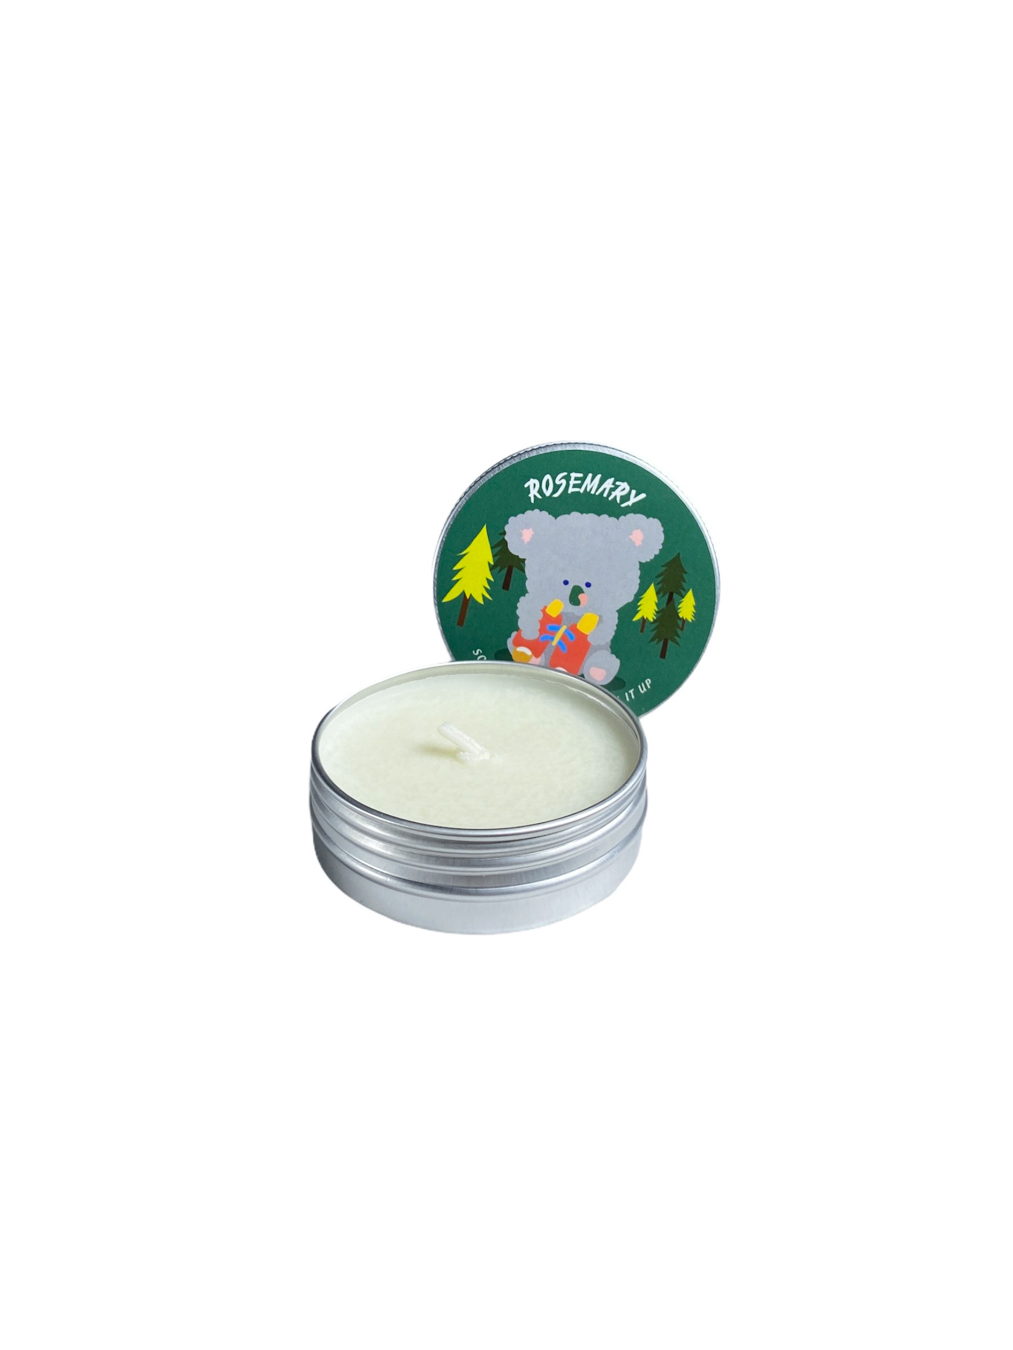 Candle - Rosemary